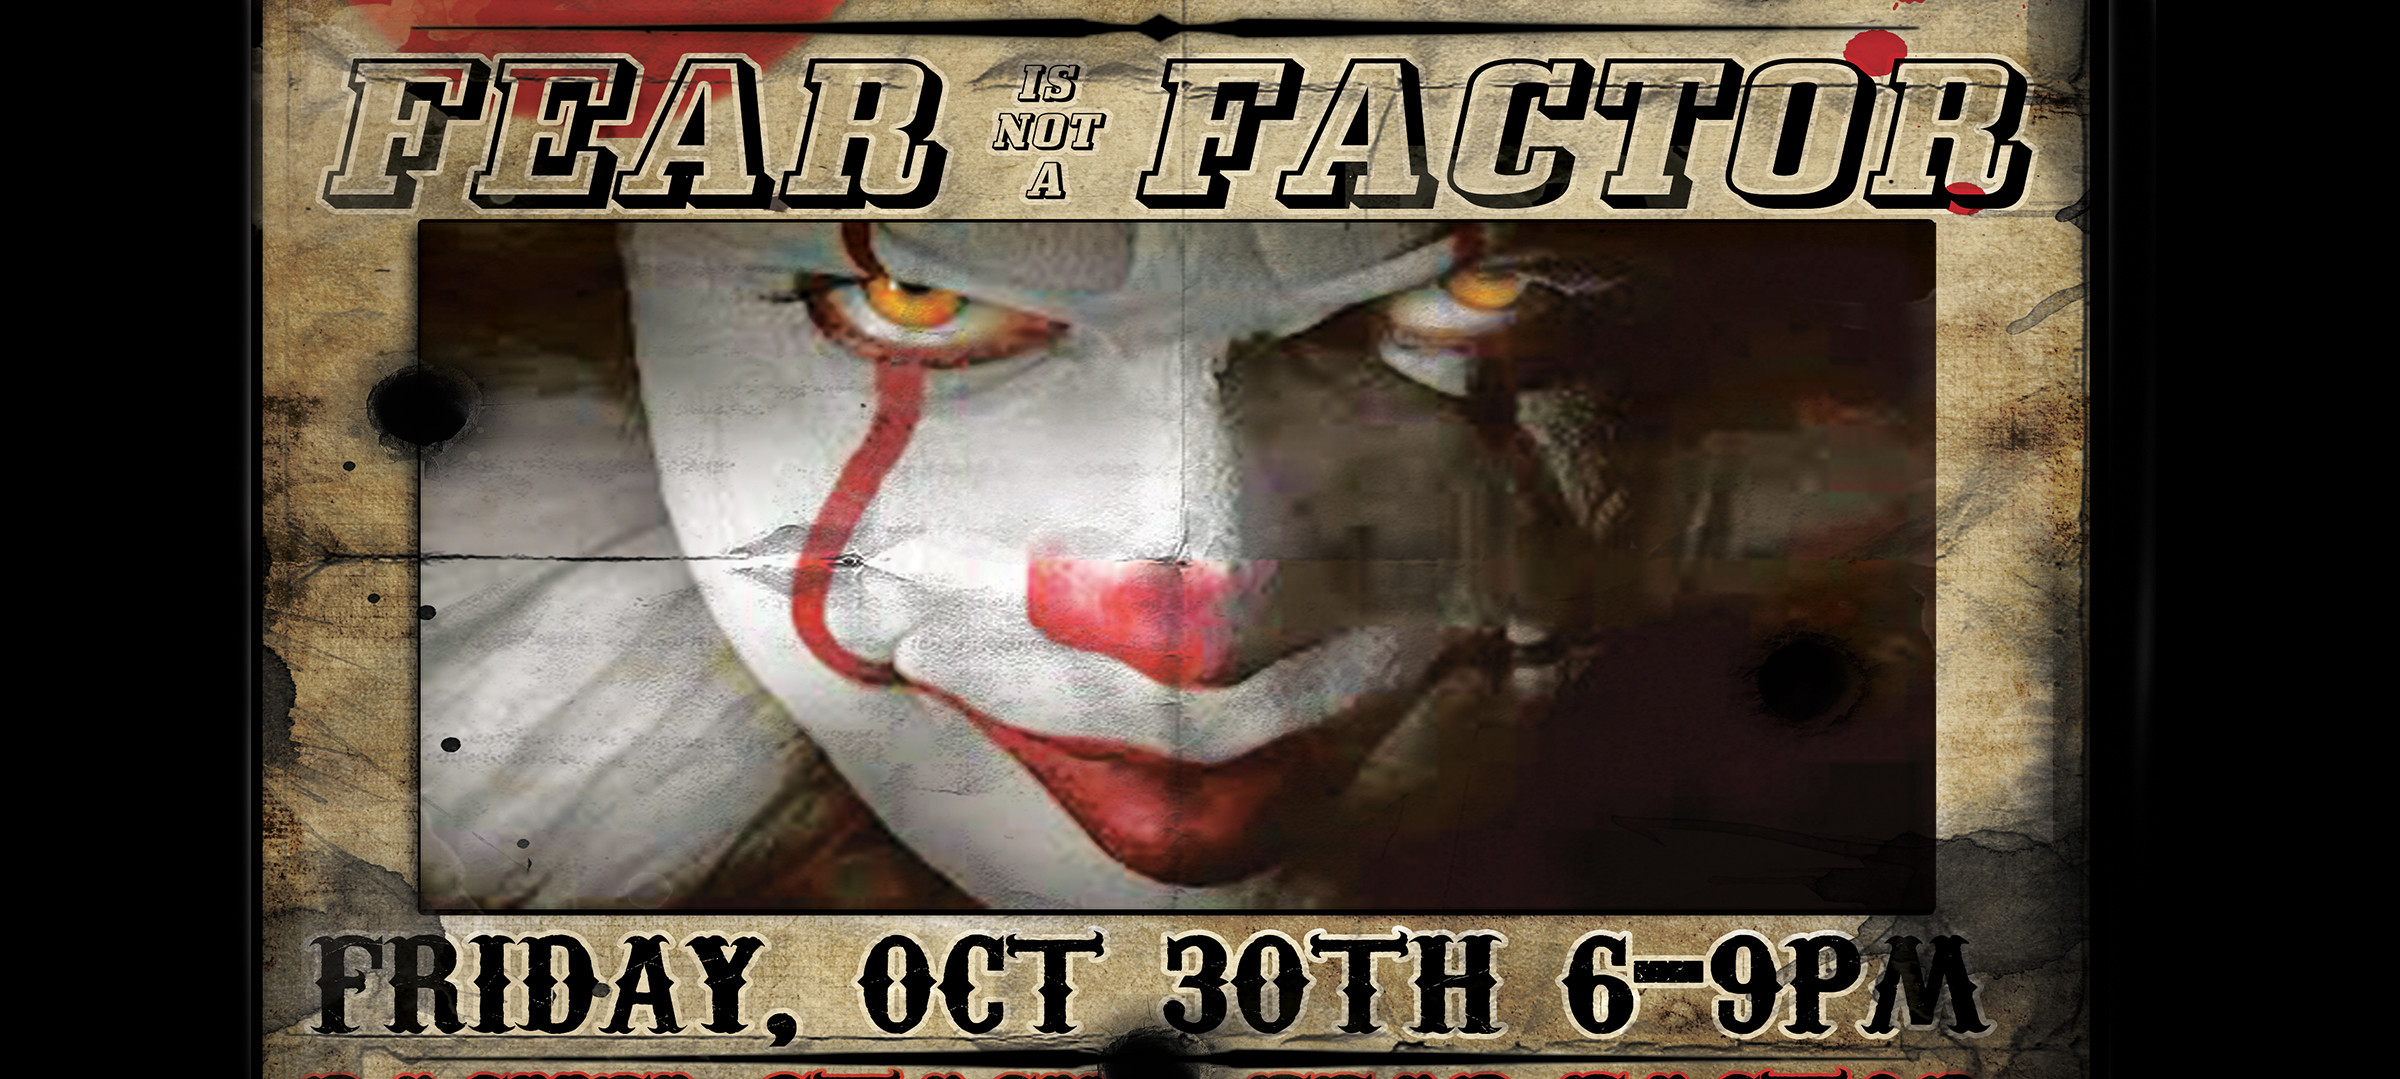 FEAR IS NOT A FACTOR HALLOWEEN BIKE NIGHT!!